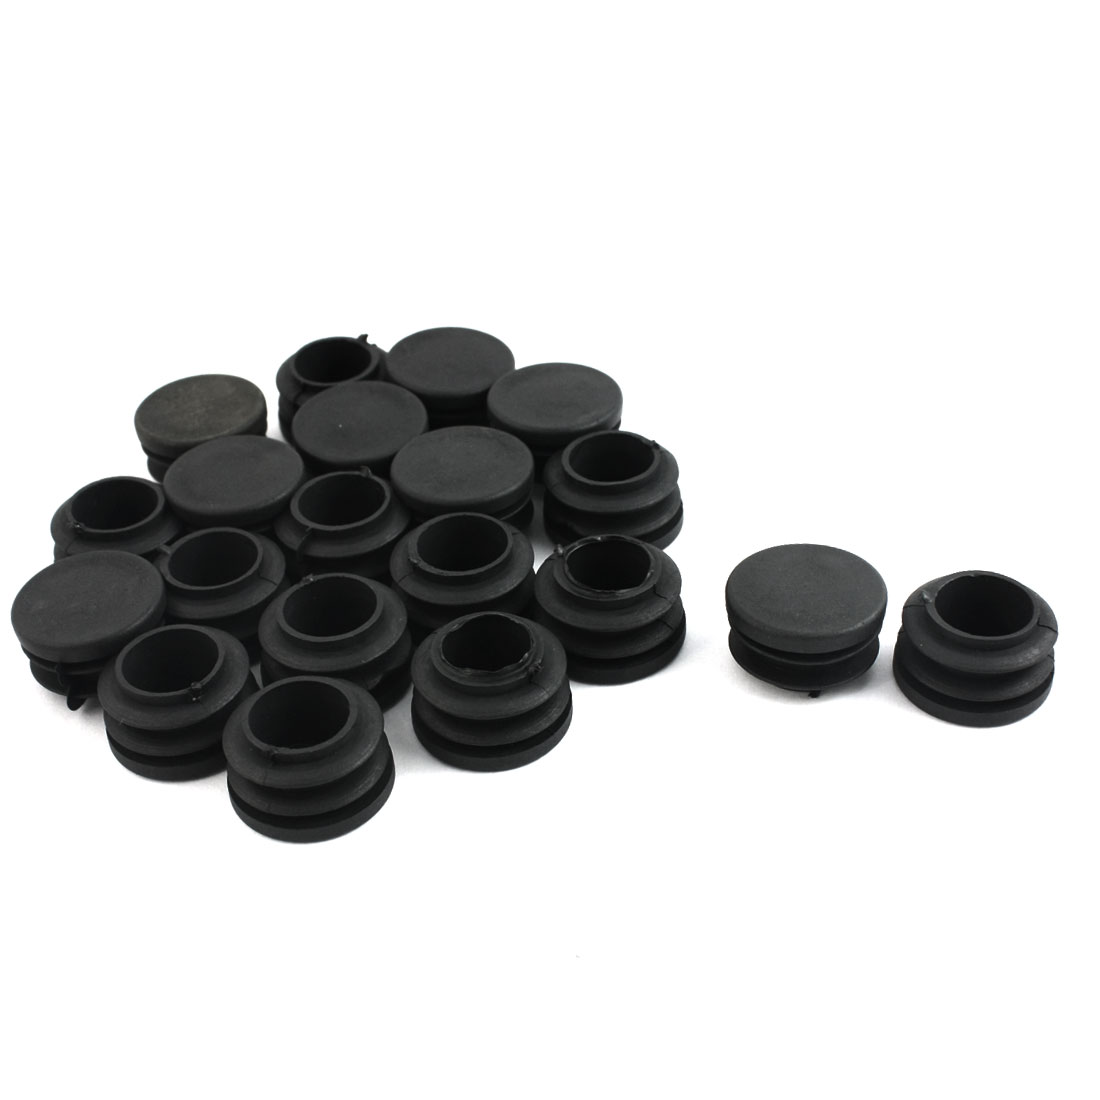 20 Pcs Black Plastic 30mm Diameter Round Tube Pipe Insert Caps Covers